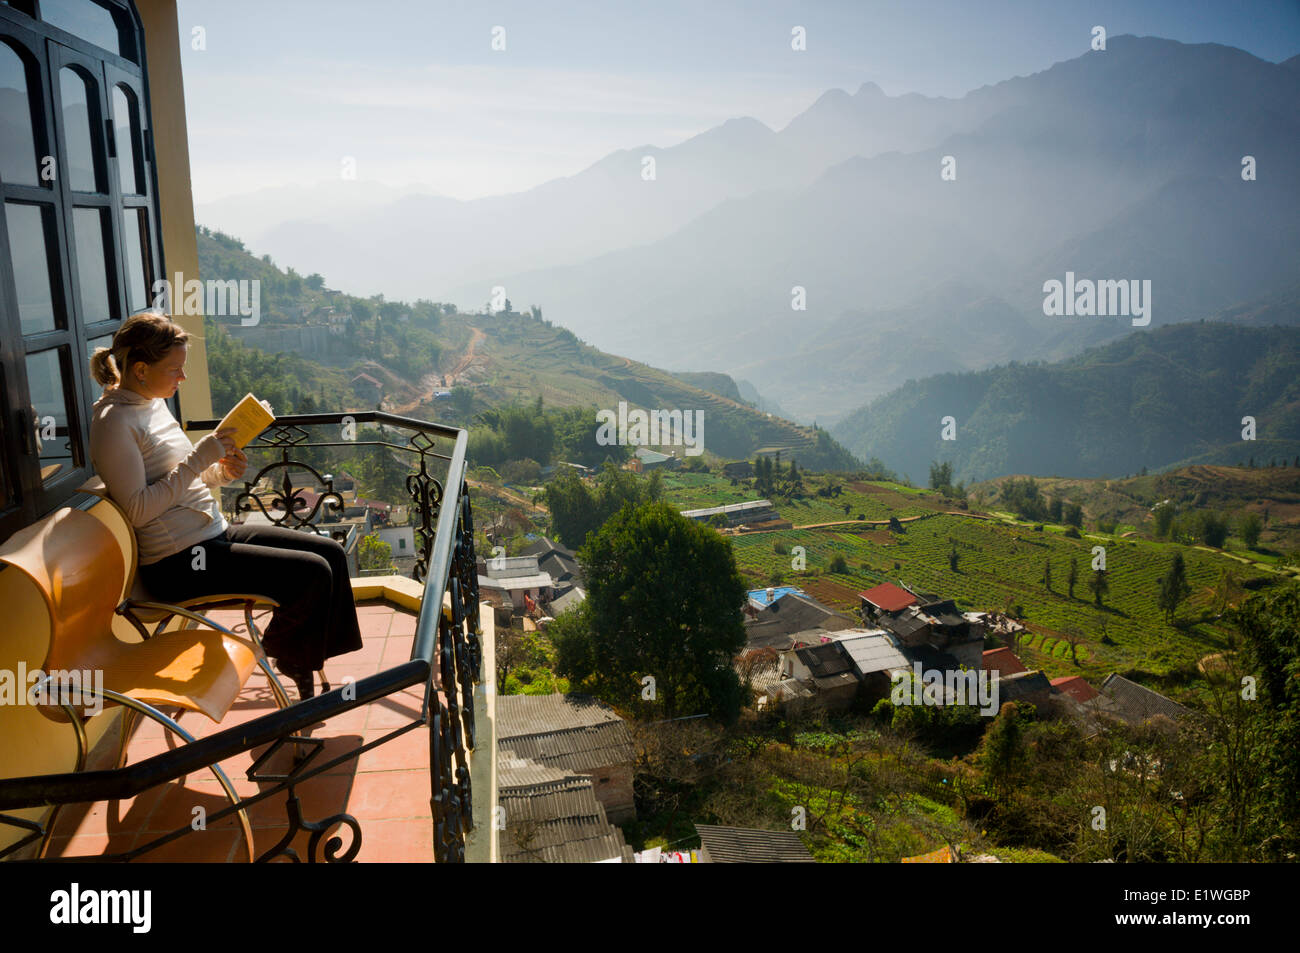 A woman reads on her balcony at a hotel in Sapa, Vietnam - Stock Image